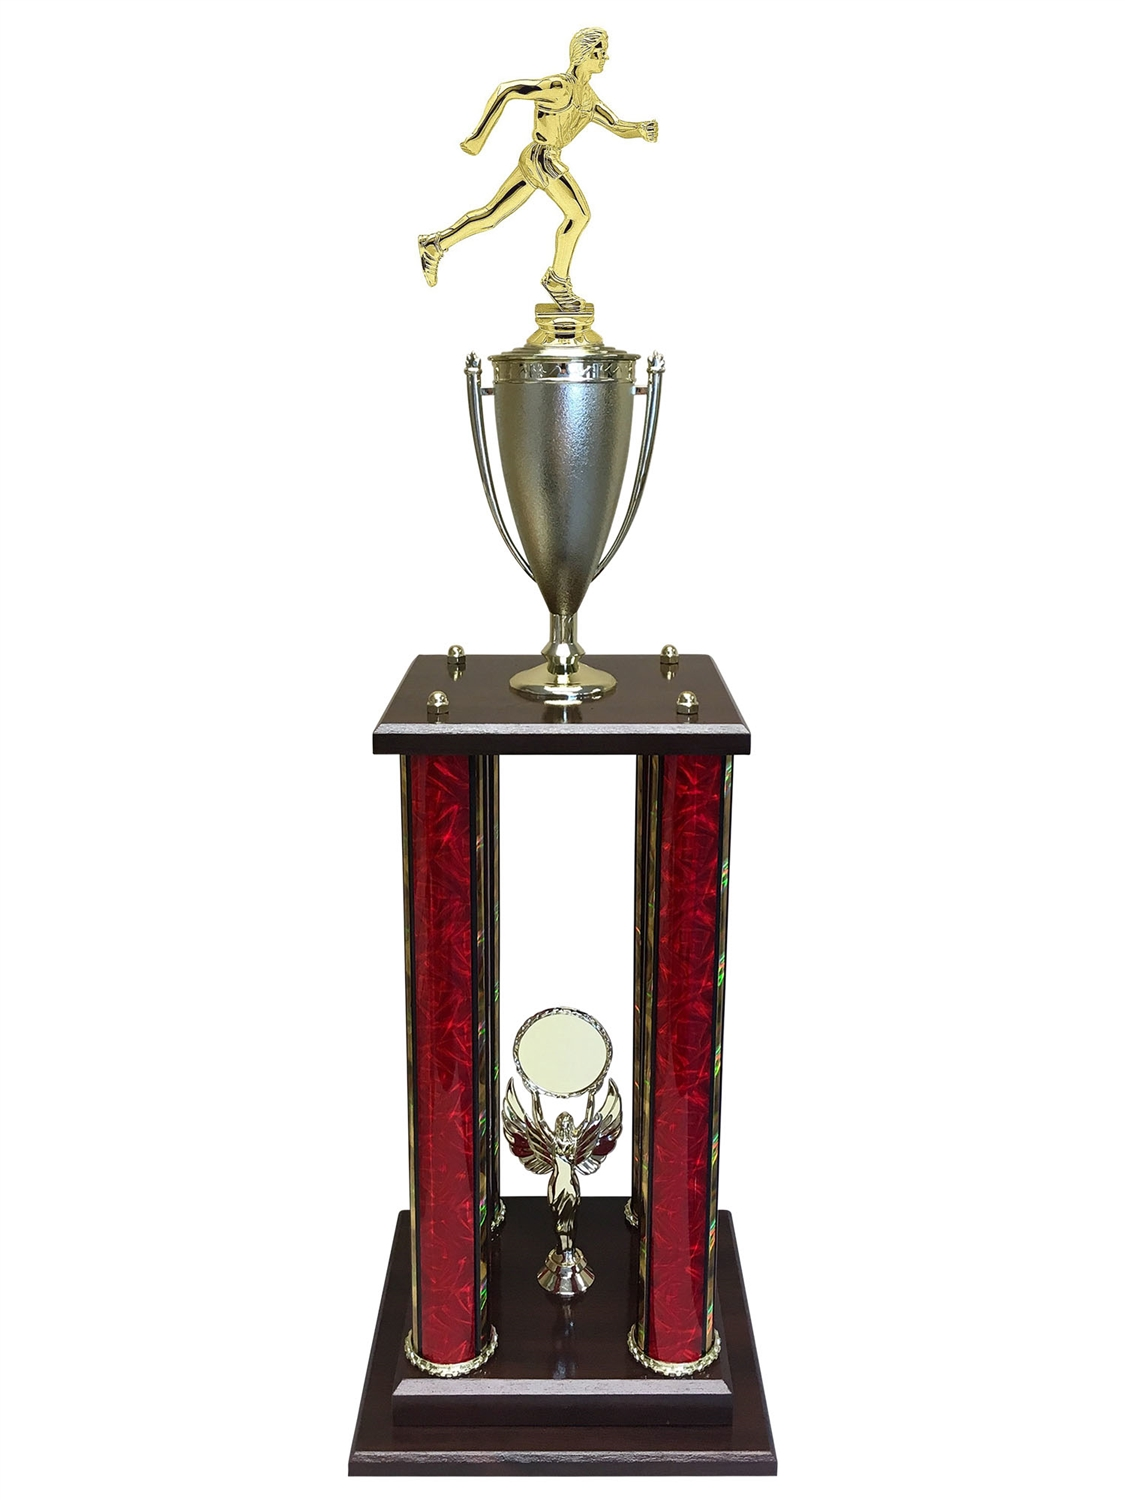 Male Cross Country Trophy Available in 11 colors & 3 sizes